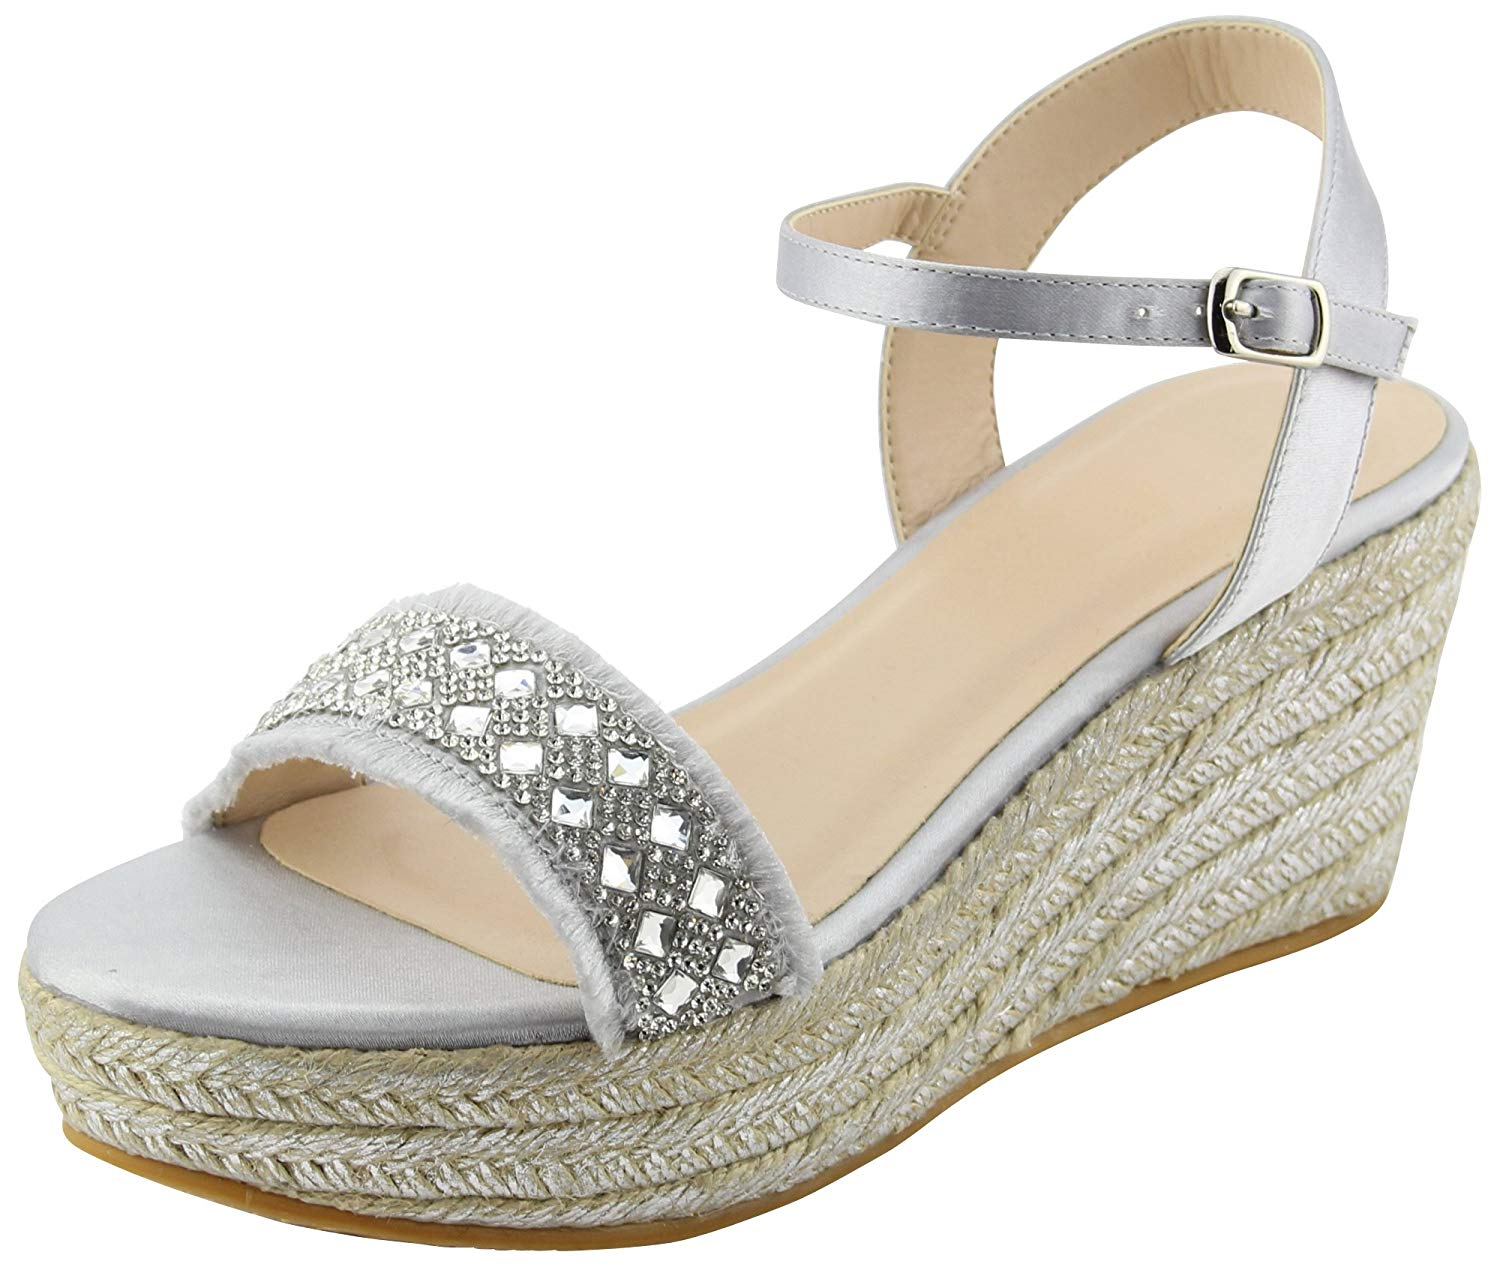 6527fa9072d Get Quotations · Cambridge Select Women s Open Toe Crystal Rhinestone  Strappy Buckle Frayed Distressed Espadrille Platform Wedge Sandal